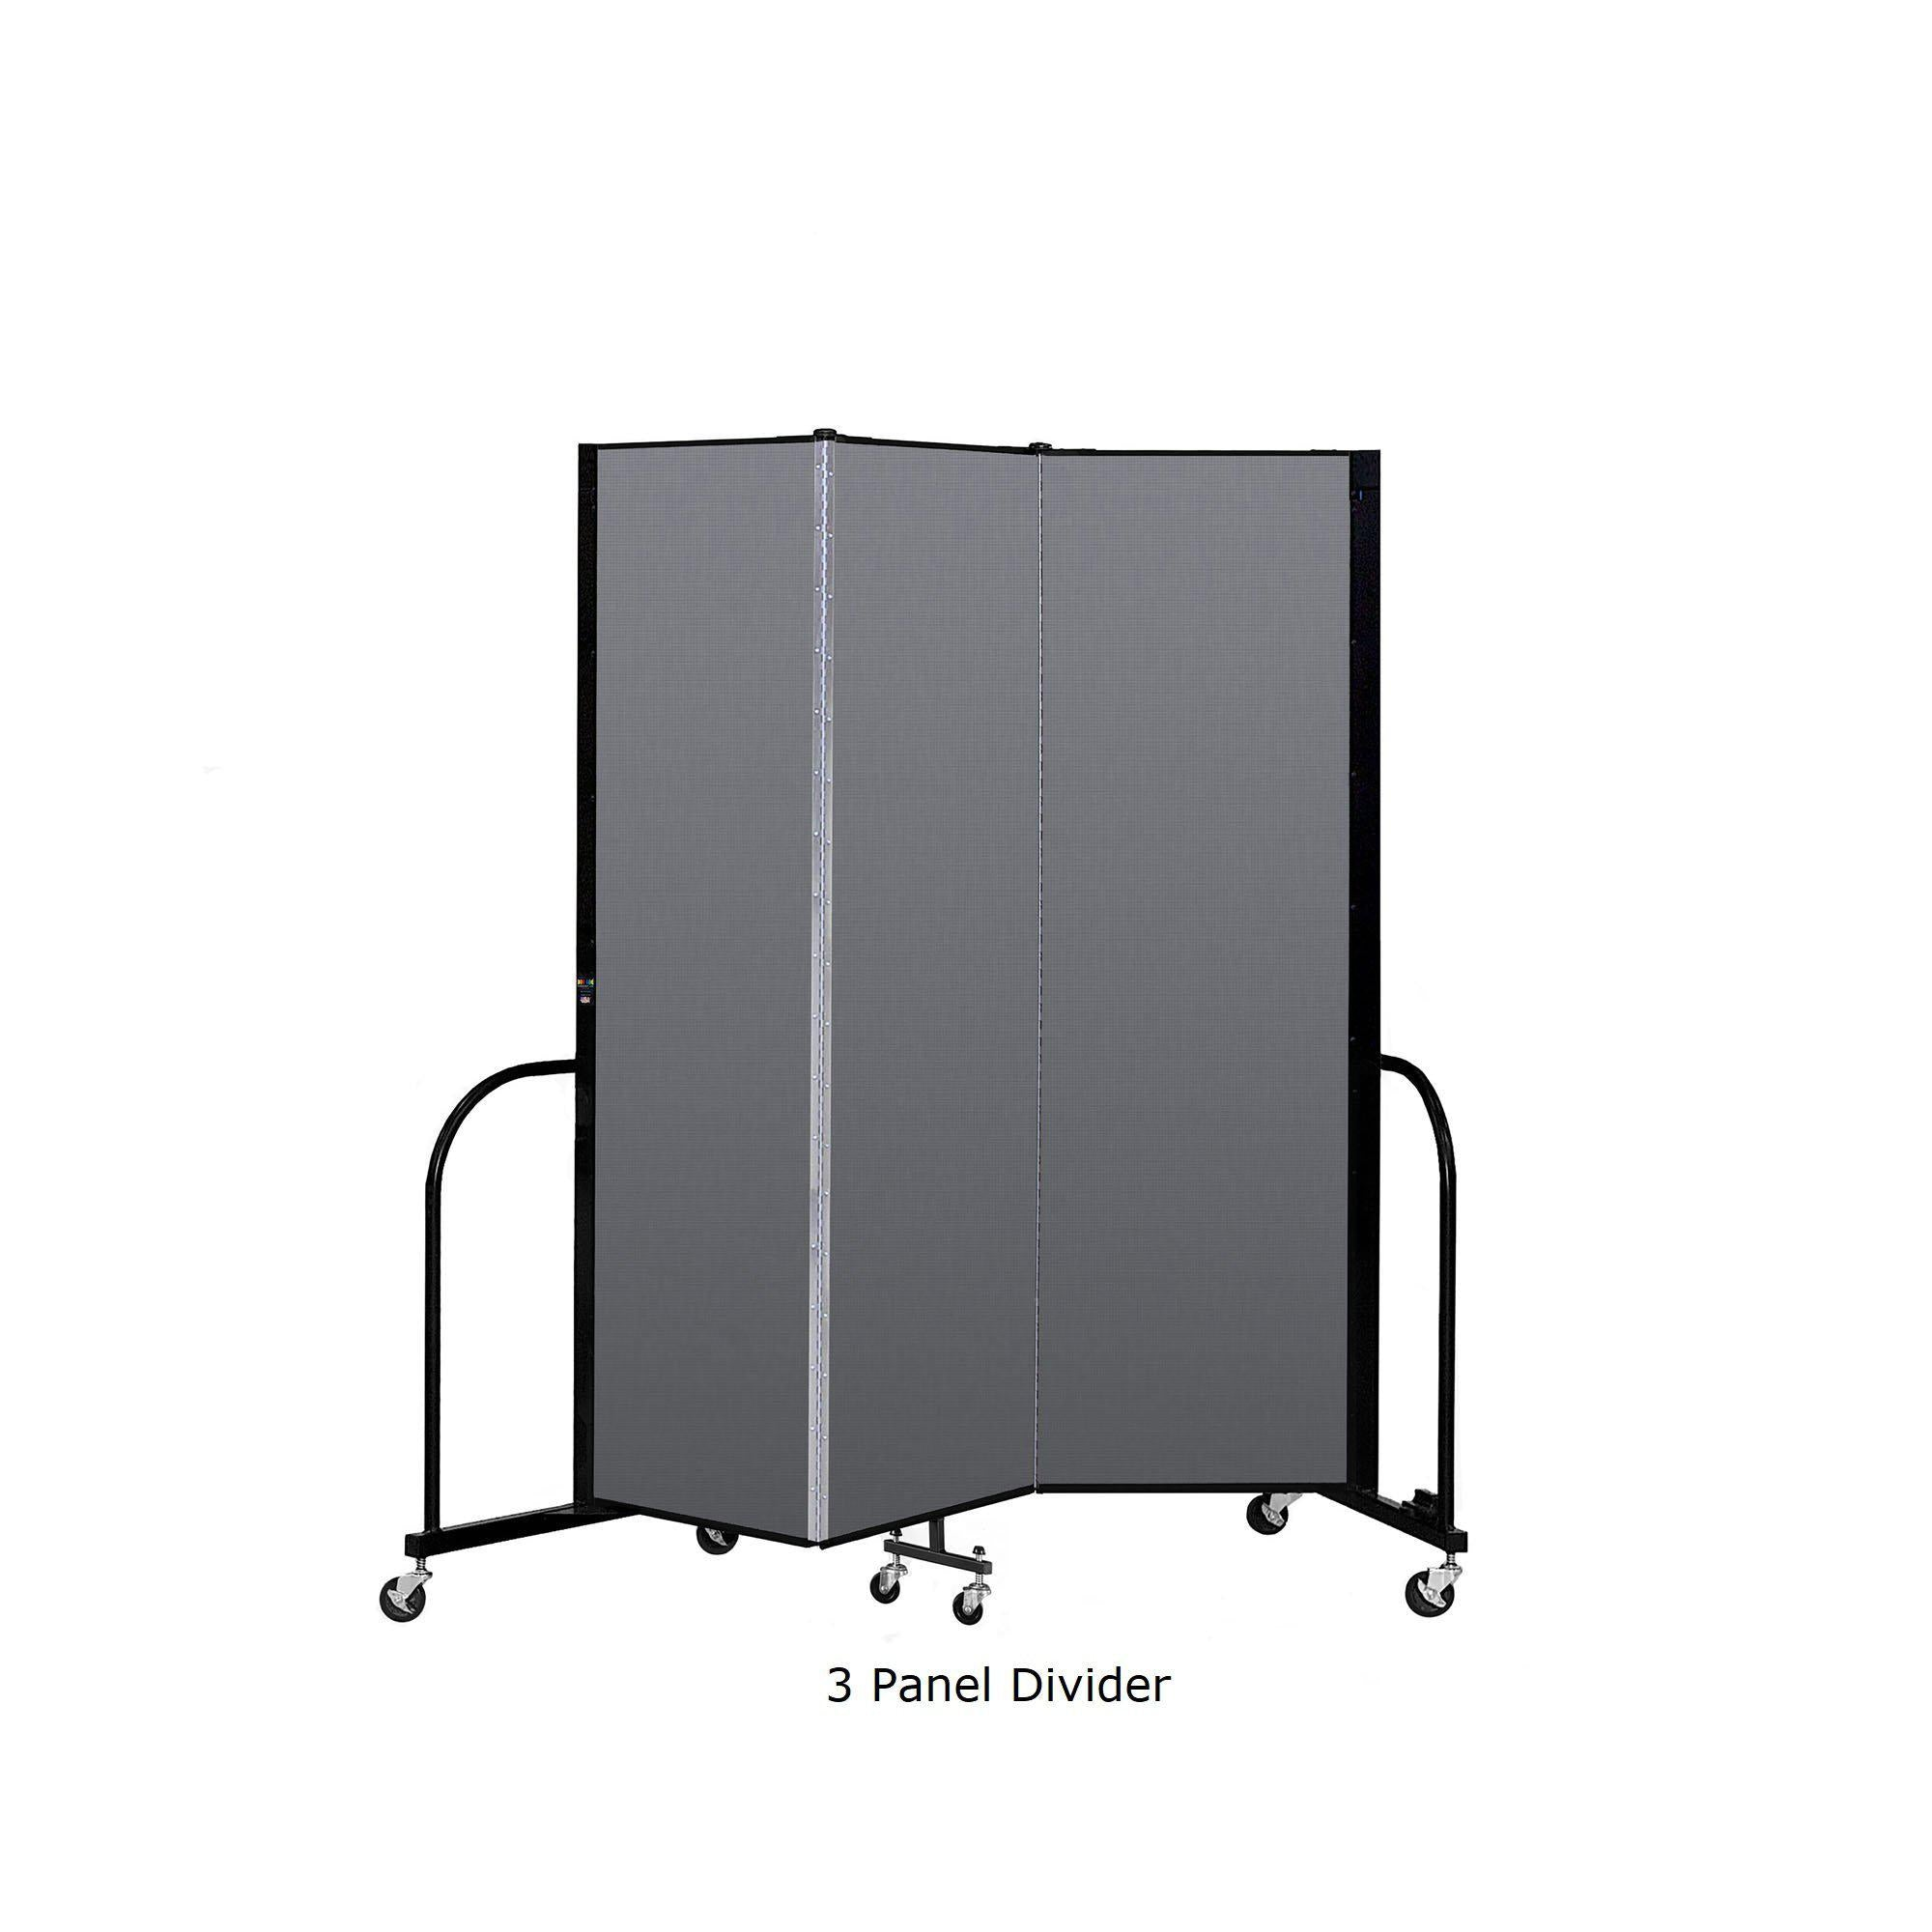 "Screenflex Free Standing Room Divider, 6' 8"" High"